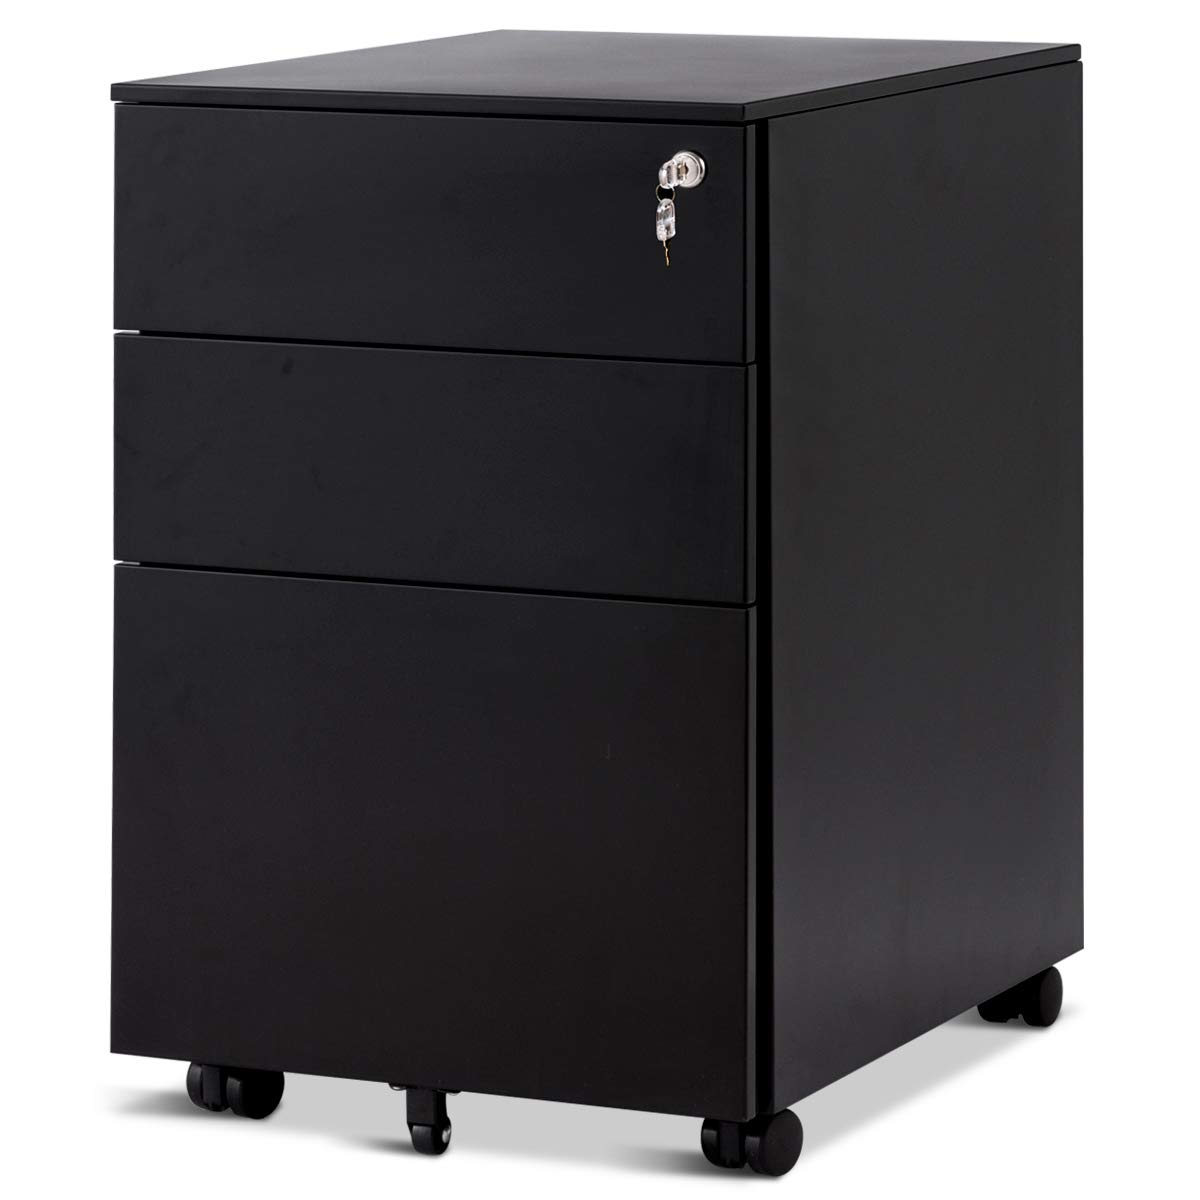 Giantex File Cabinet W/3 Lockable Drawers Include 2 Keys, Wheels, Hanging File Frame and Removable Tray, Metal Vertical Full Assembled for Office Mobile Pedestal Rolling File Cabinet (Black) by Giantex